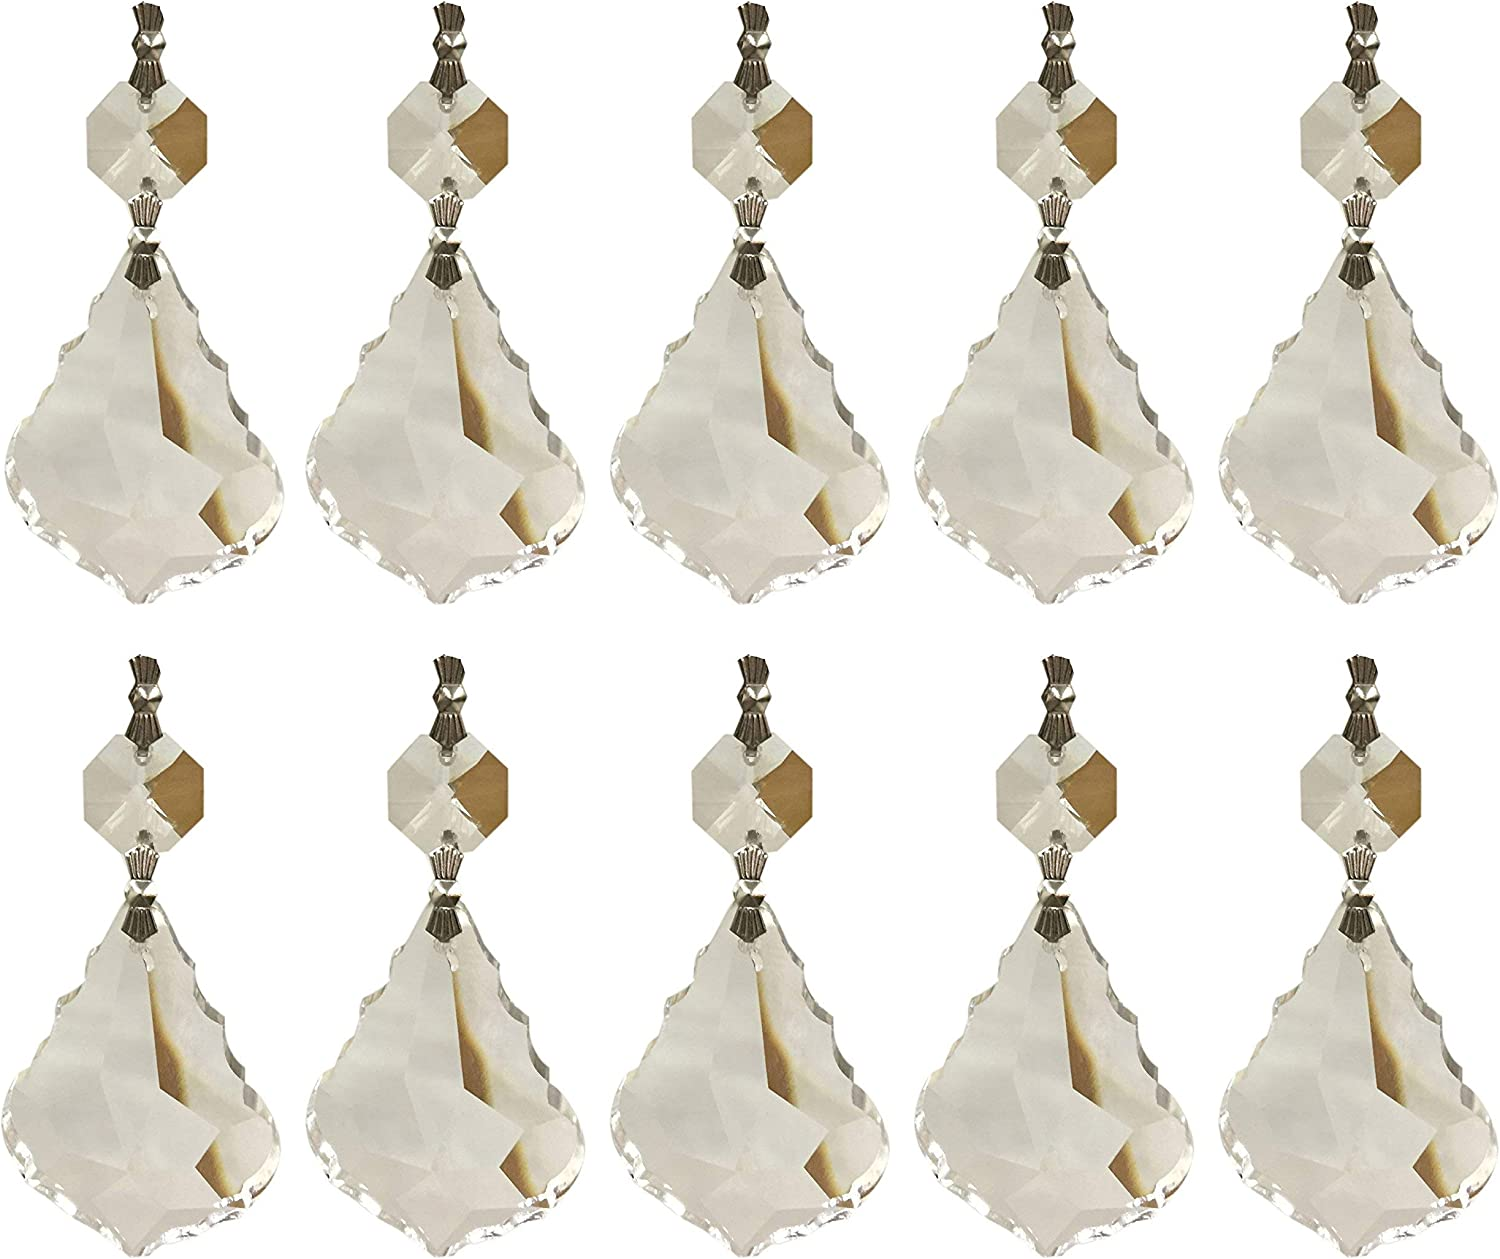 Polished Gold Plated 10 Pieces  G1002G-CR010 Brass Framed Crystal Teardrop Glass Pendant